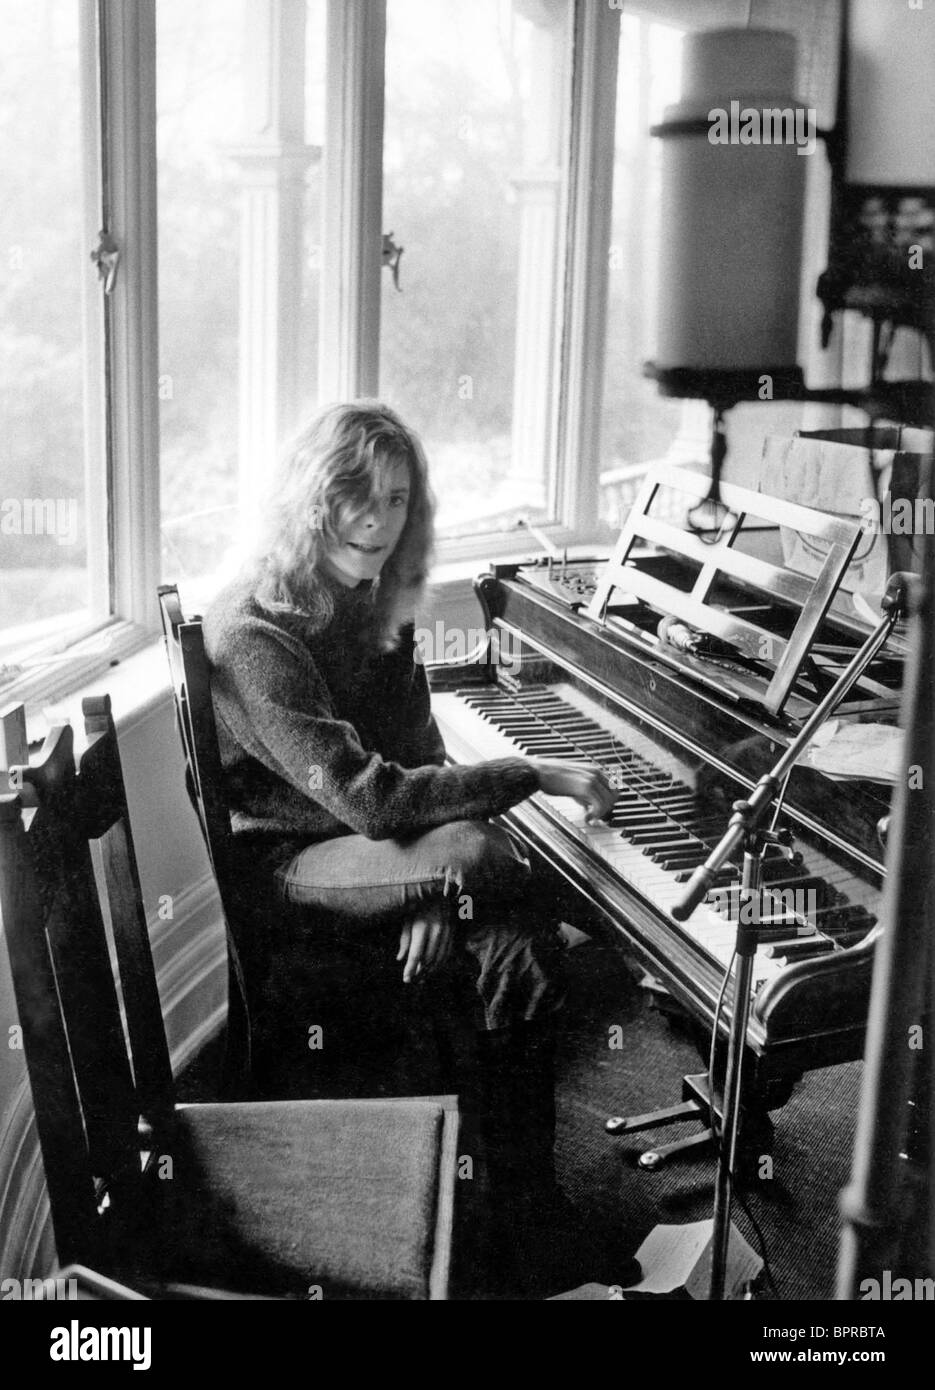 David Bowie In His Ground Floor Apartment At Haddon Hall